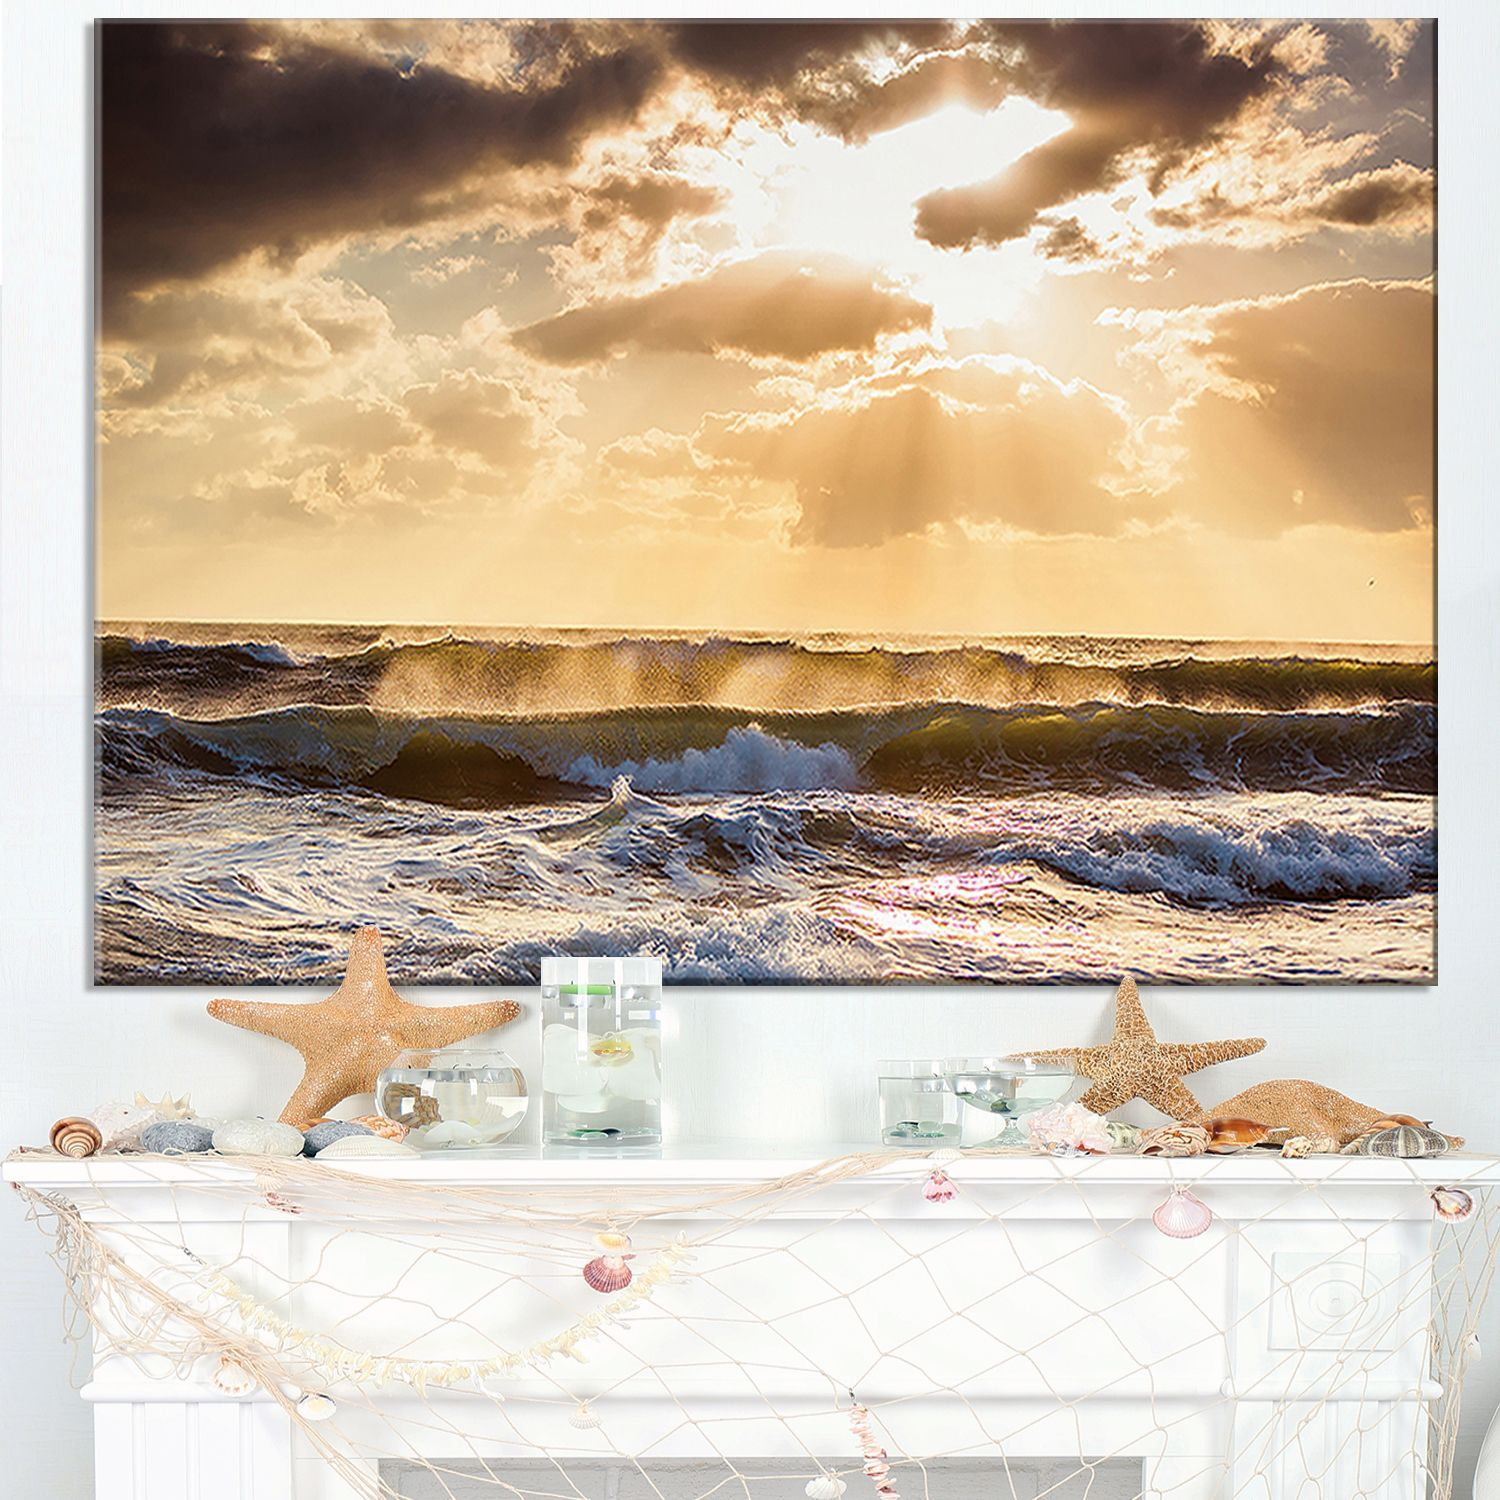 Sunrise and Roaring Sea Waves - Beach Wall Art | Products ...